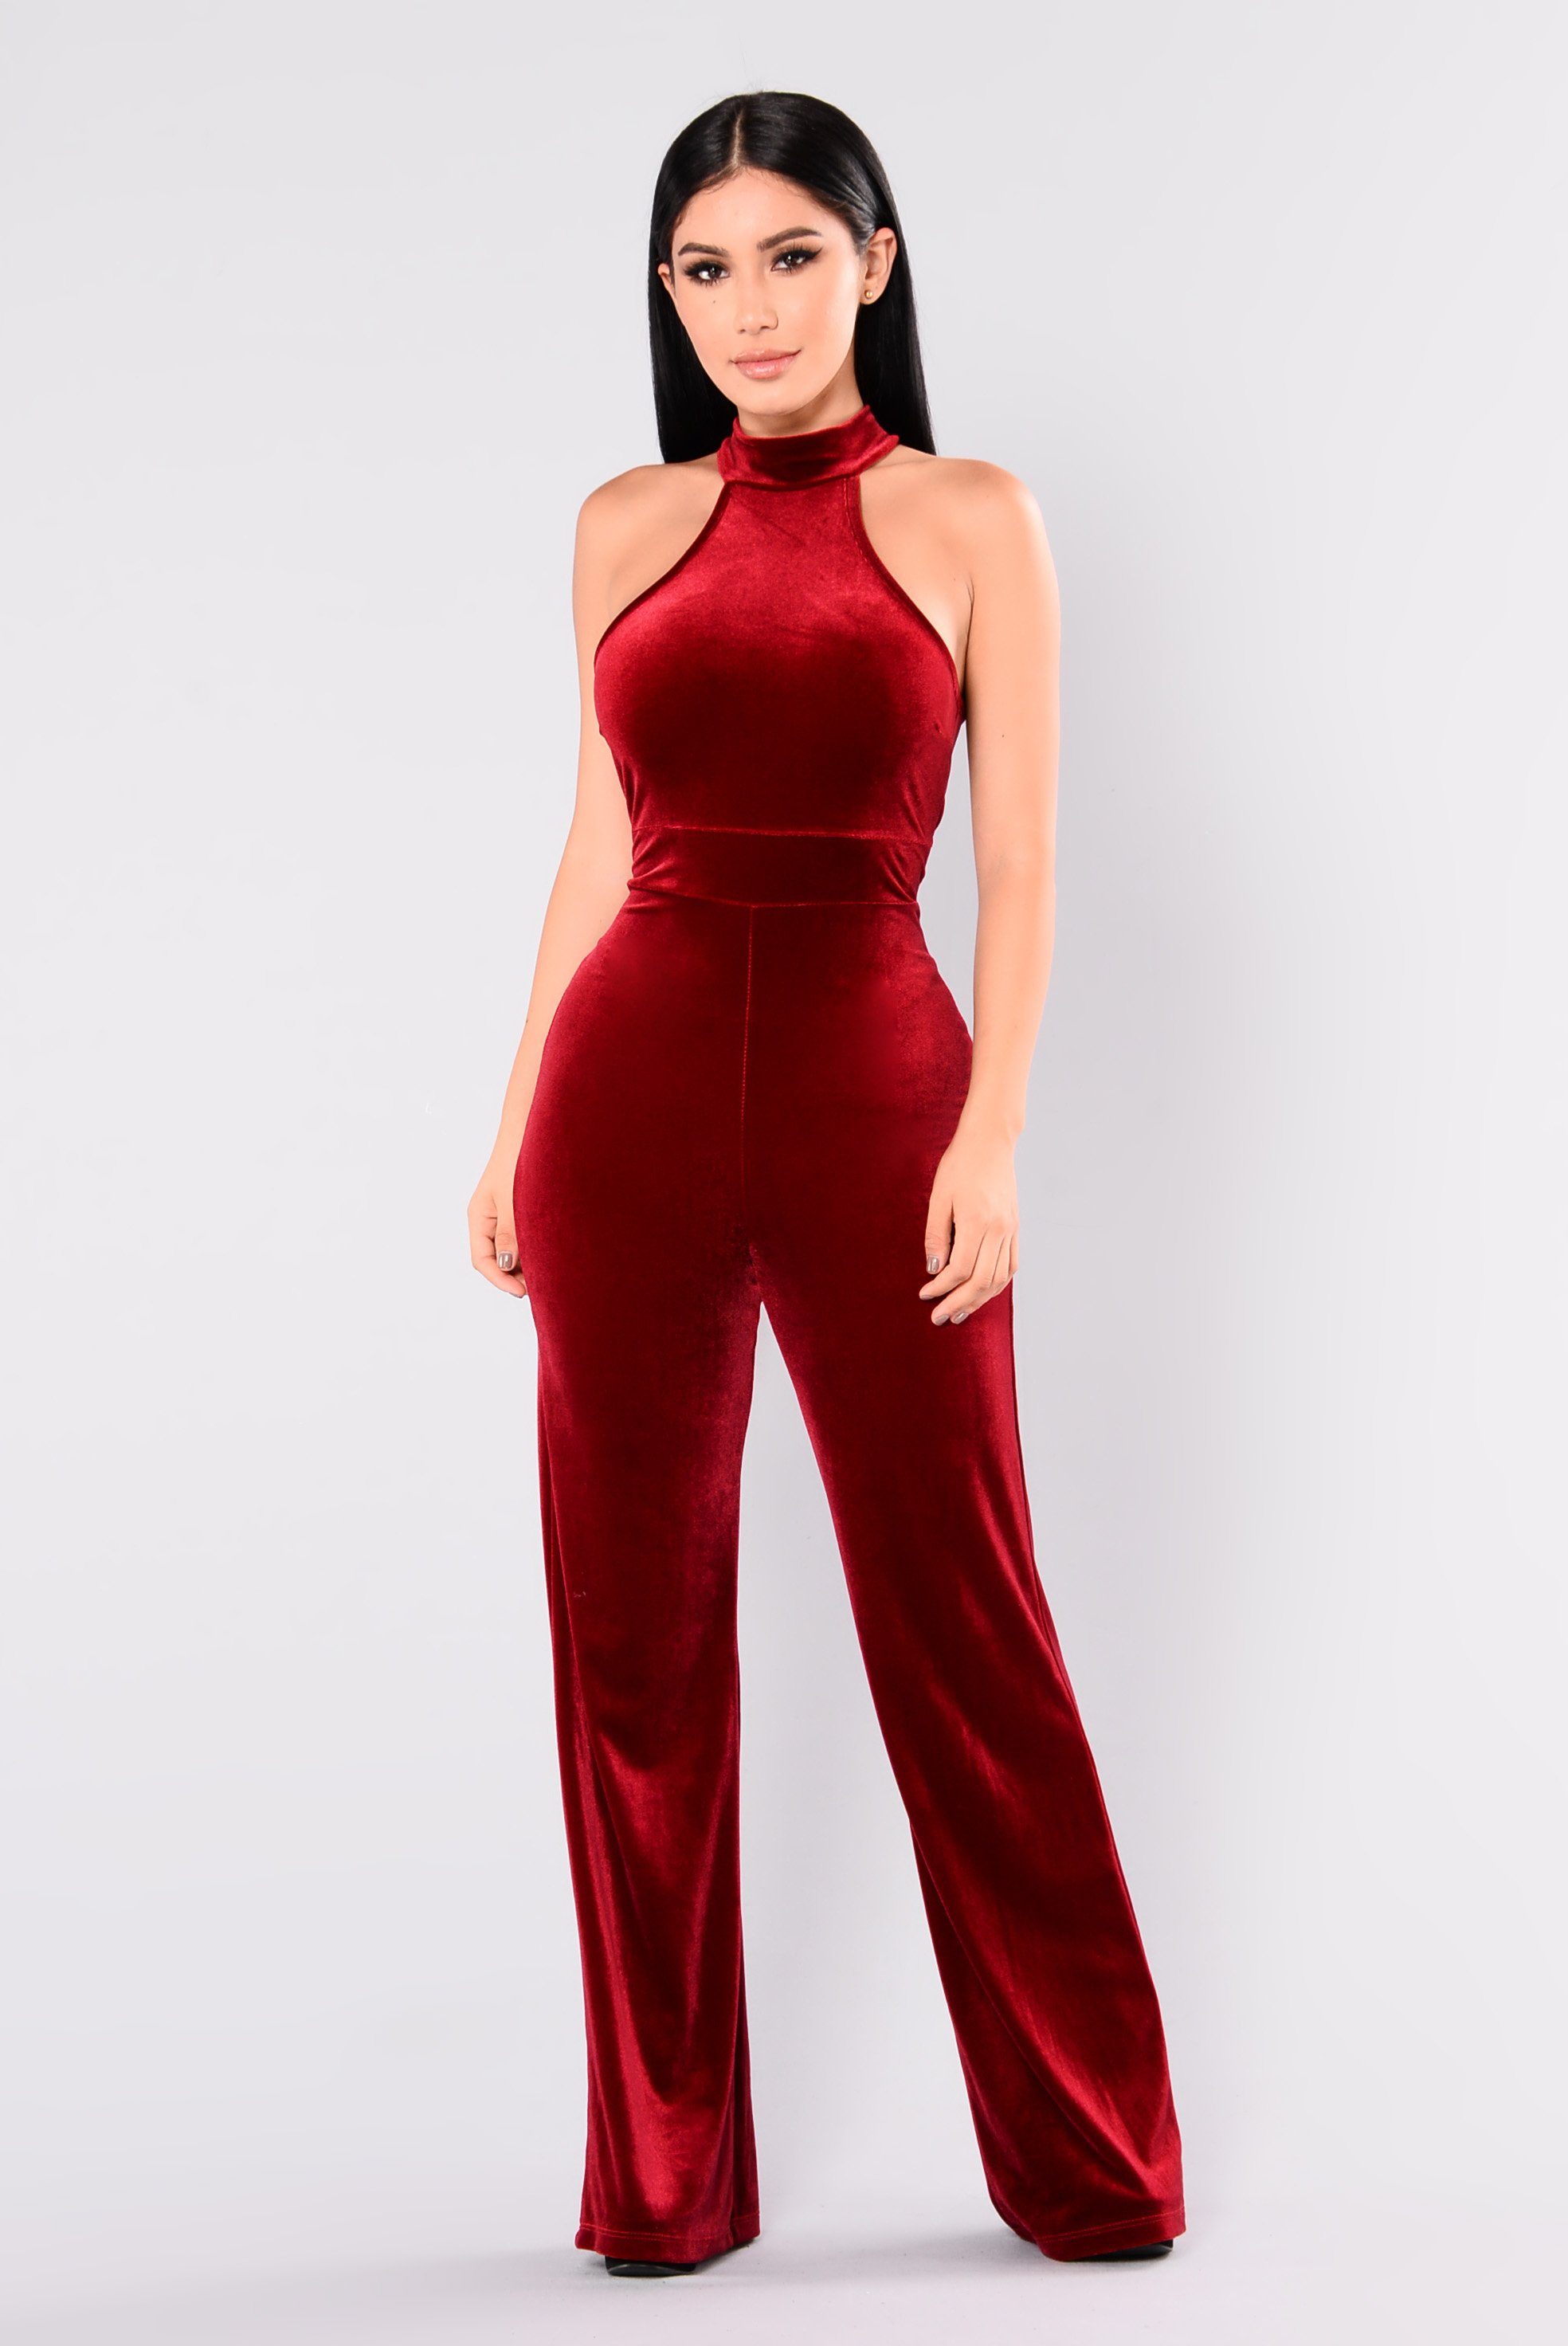 Juicy Couture Tracksuit | Velor Jumpsuit | Juicy Sweats